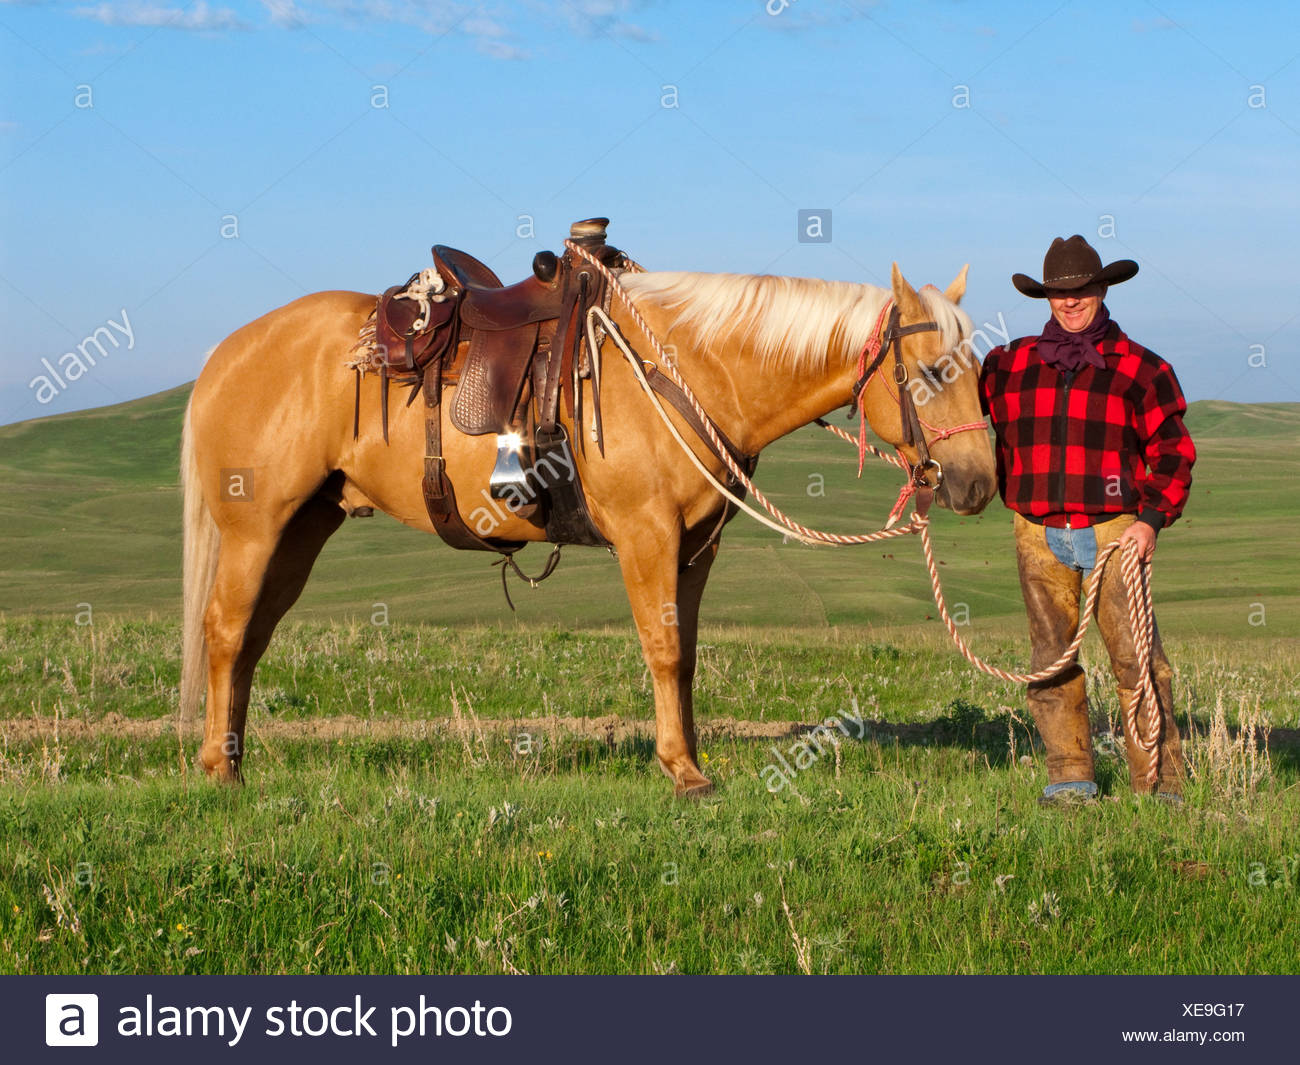 Livestock - A cowboy poses with his horse on a green prairie / Alberta, Canada. Stock Photo